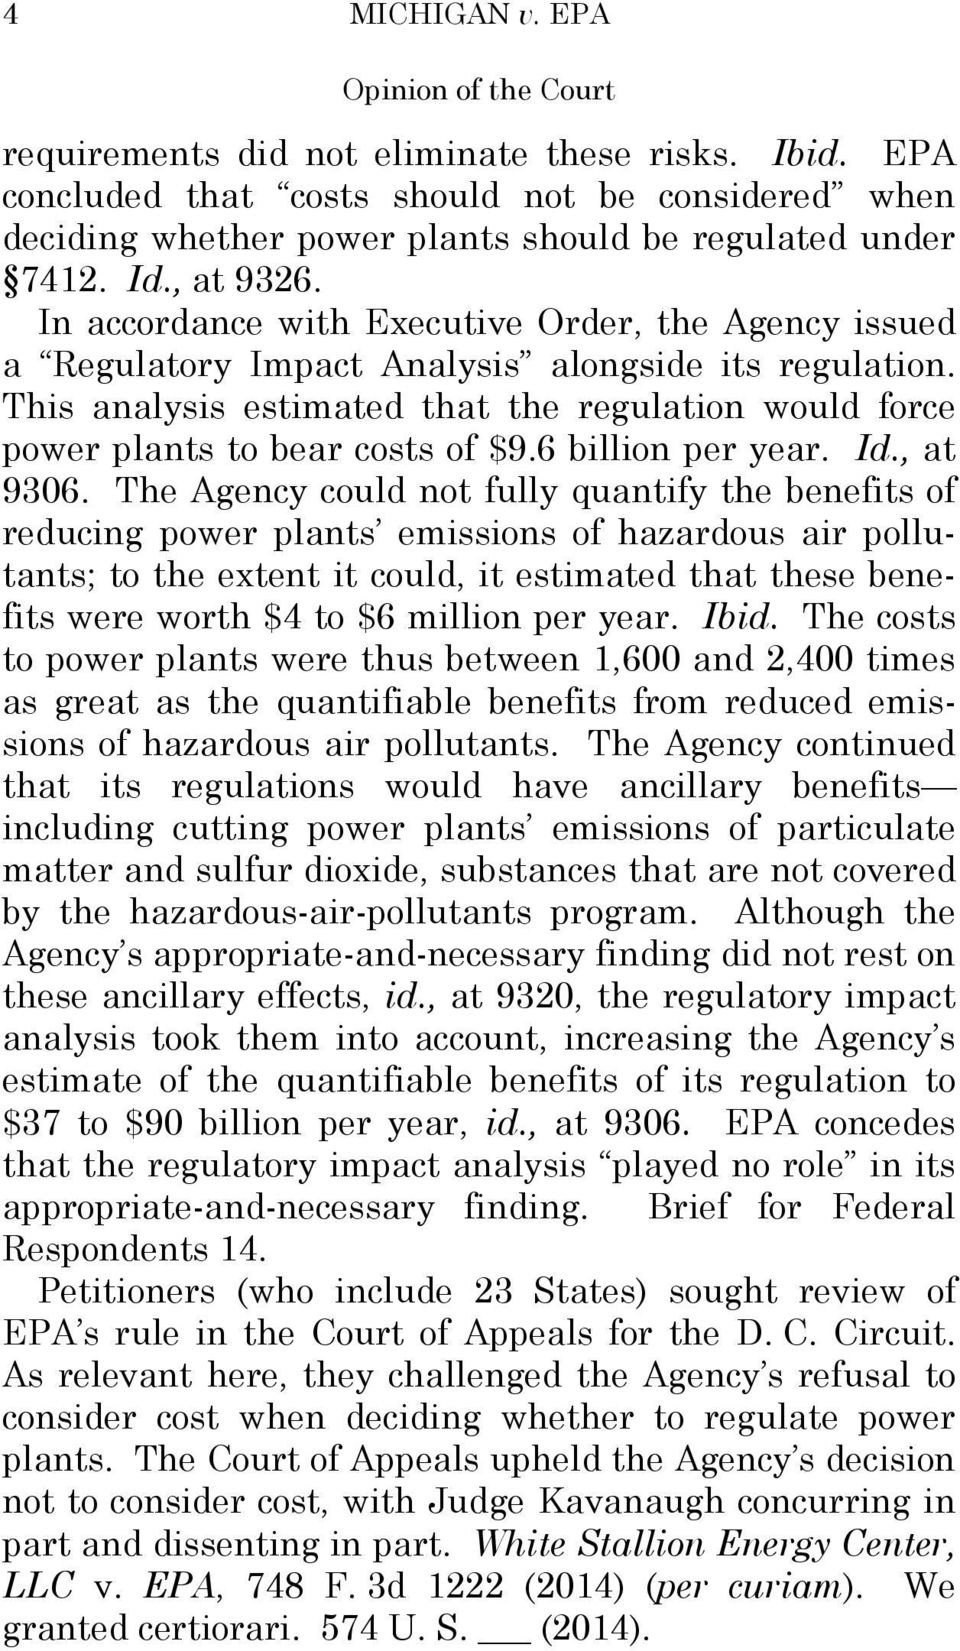 In accordance with Executive Order, the Agency issued a Regulatory Impact Analysis alongside its regulation. This analysis estimated that the regulation would force power plants to bear costs of $9.